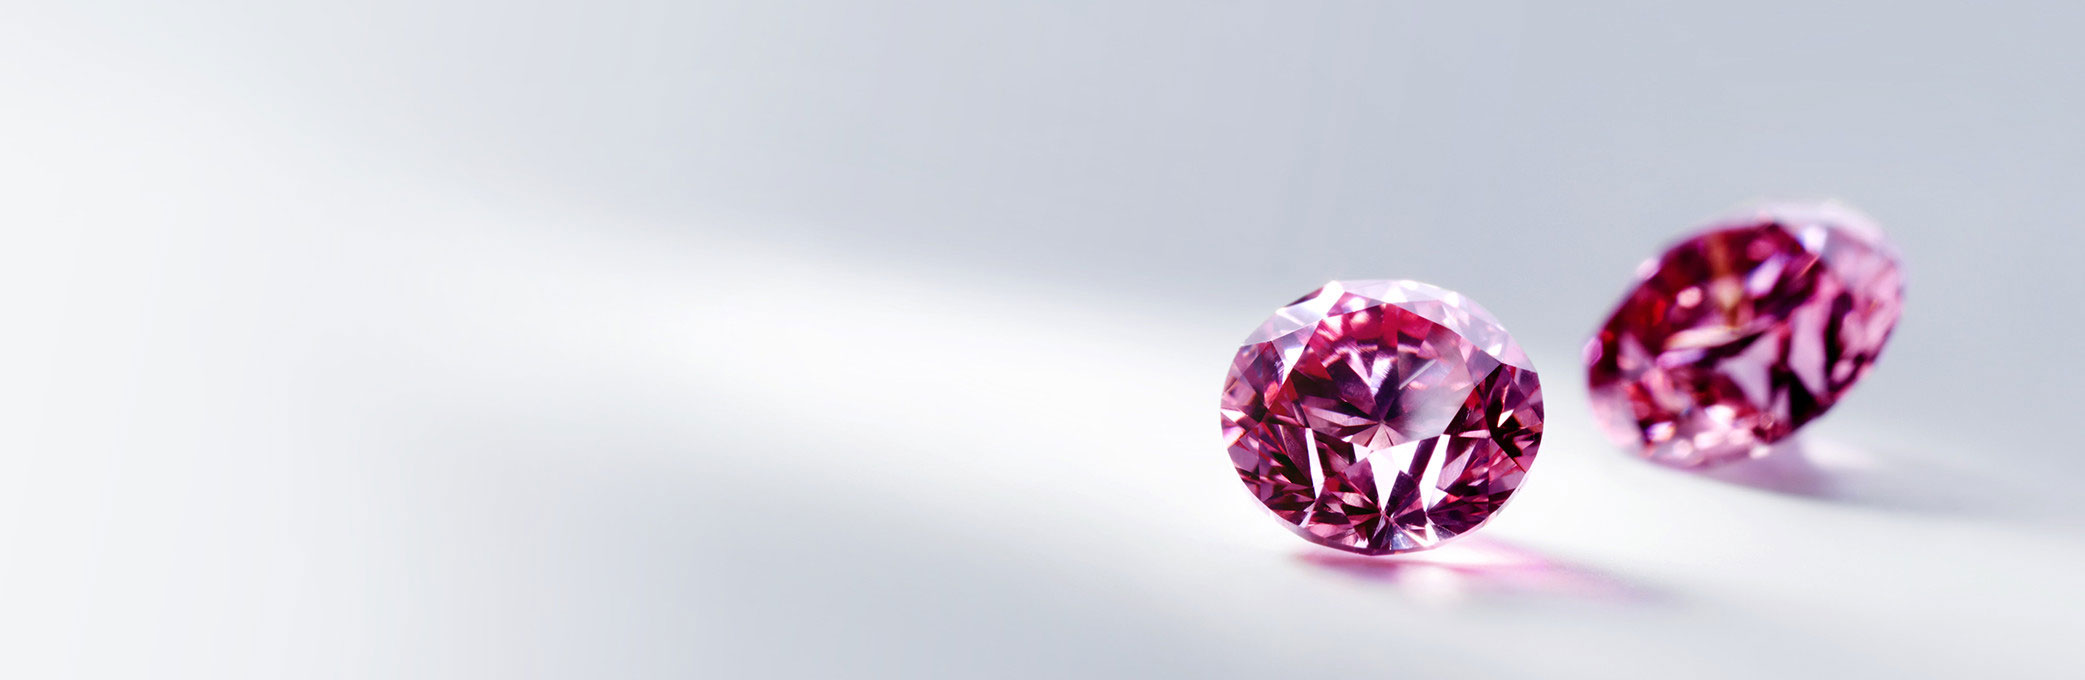 image budget background pink rare online diamond diamonds nina slider argylepinkloosea designer ring s rarer jewellery